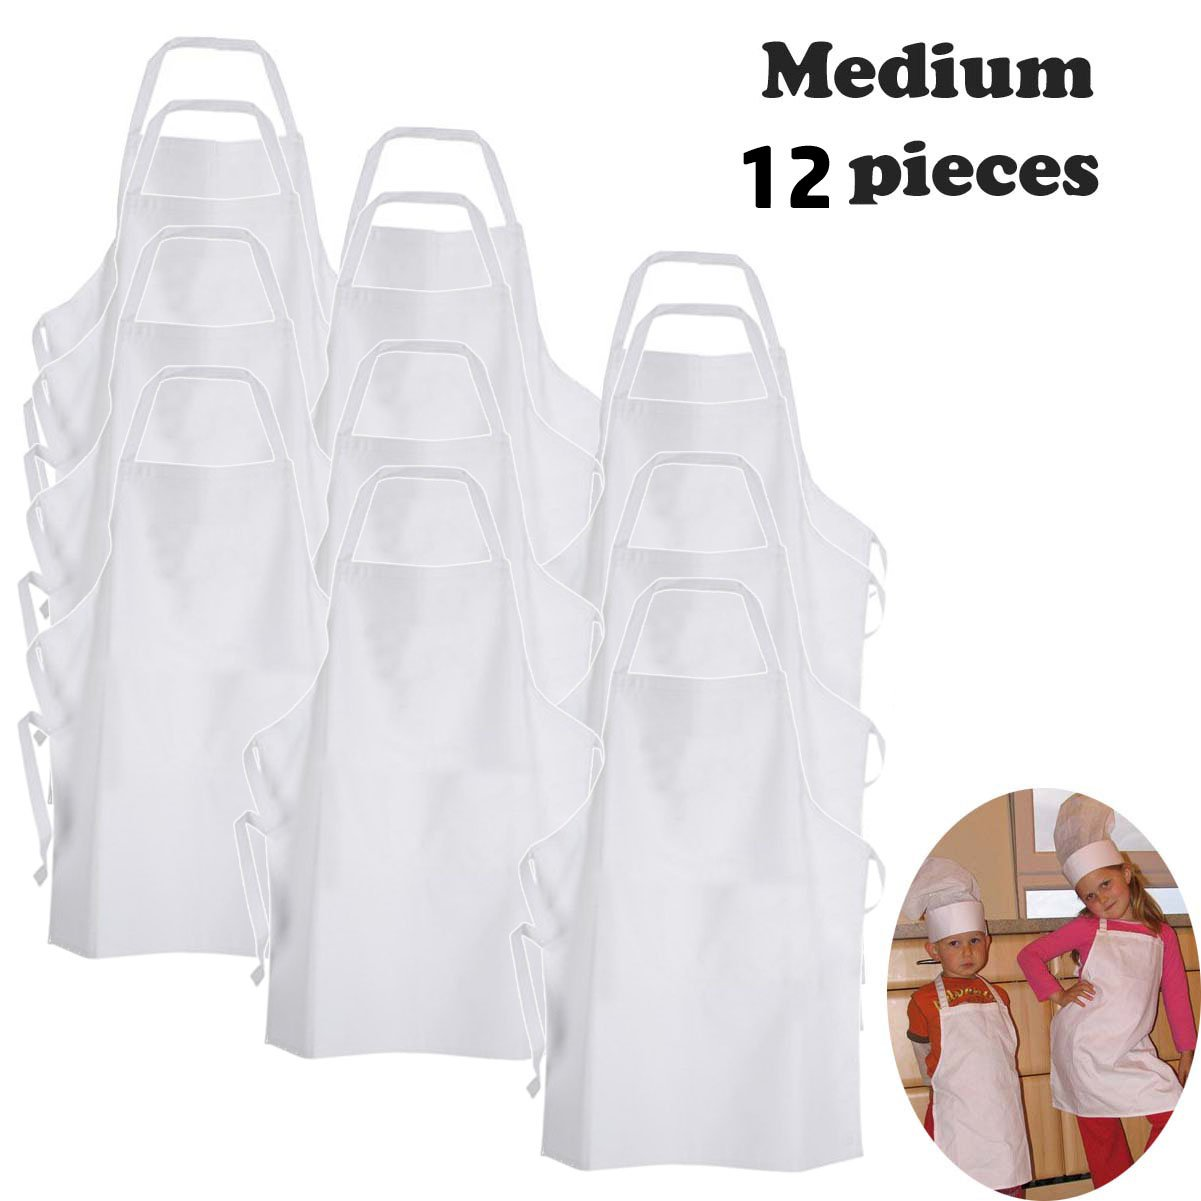 White fabric kids'chef apron to decorate with marker, paint, iron on or embroidery (M: 3-9 Years, 12-pc pack) by Twinklebelle